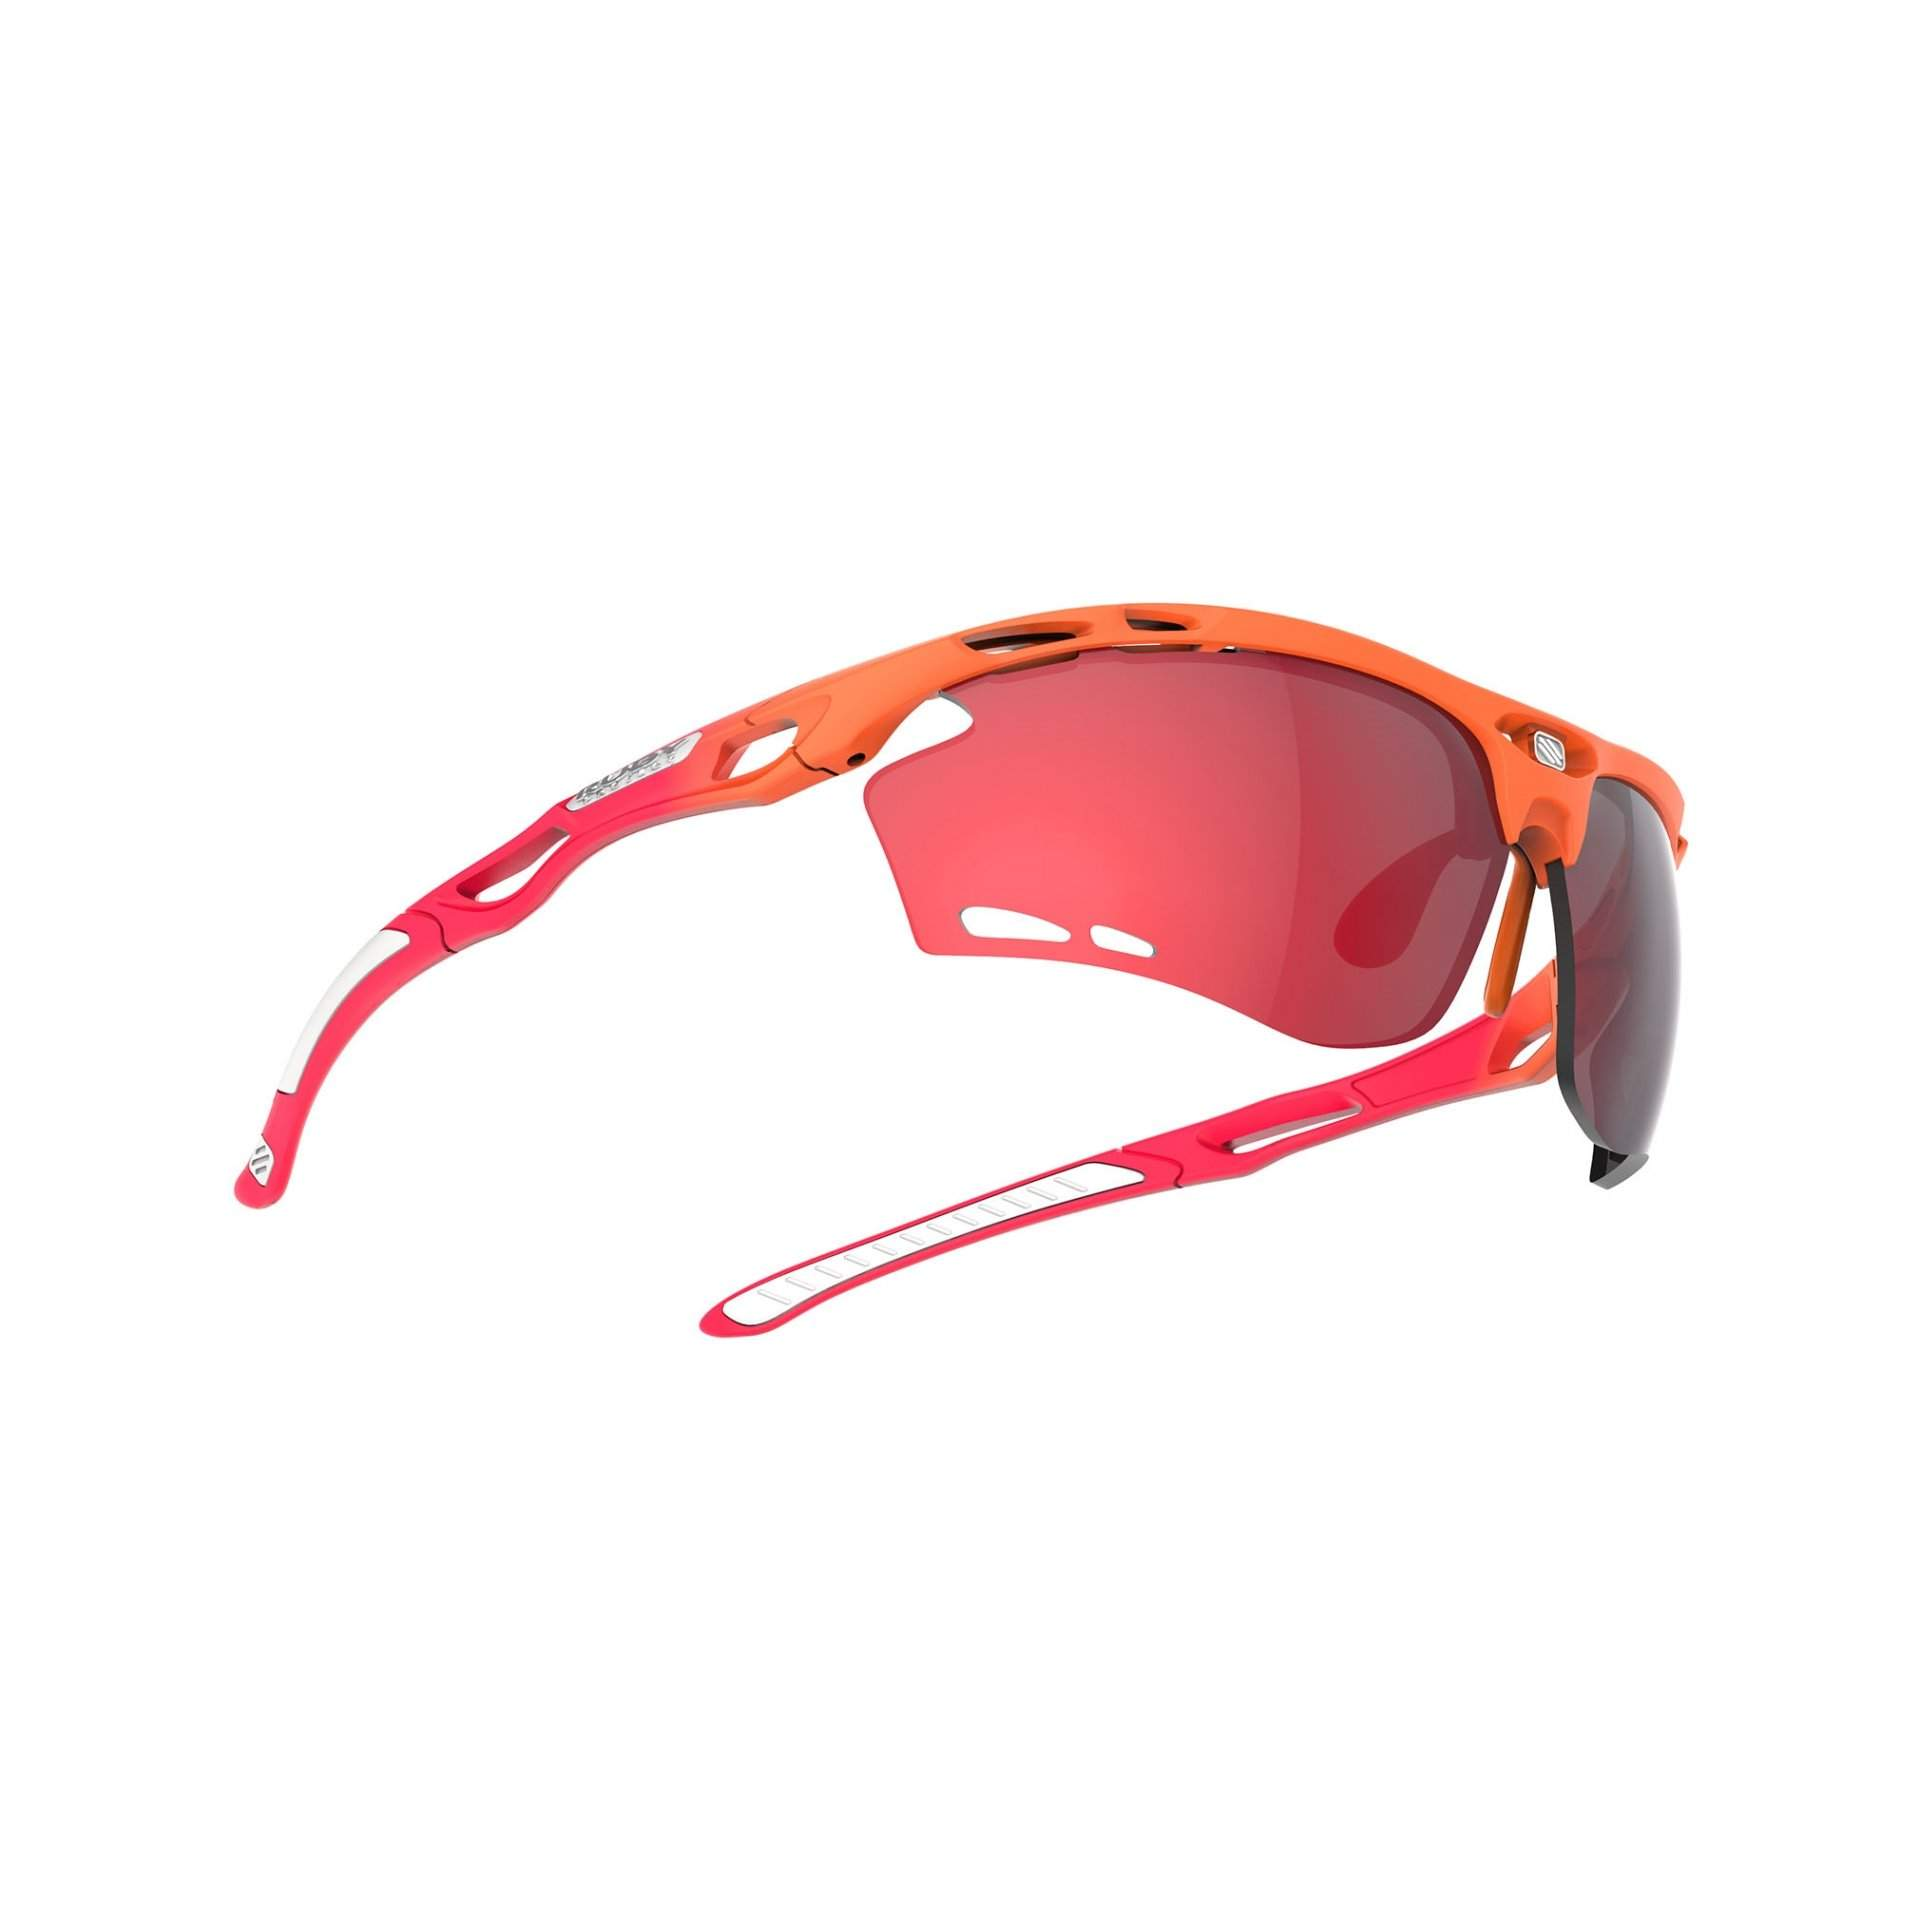 OKULARY RUDY PROJECT PROPULSE MANDARIN FADE CORAL MULTILASER RED 3